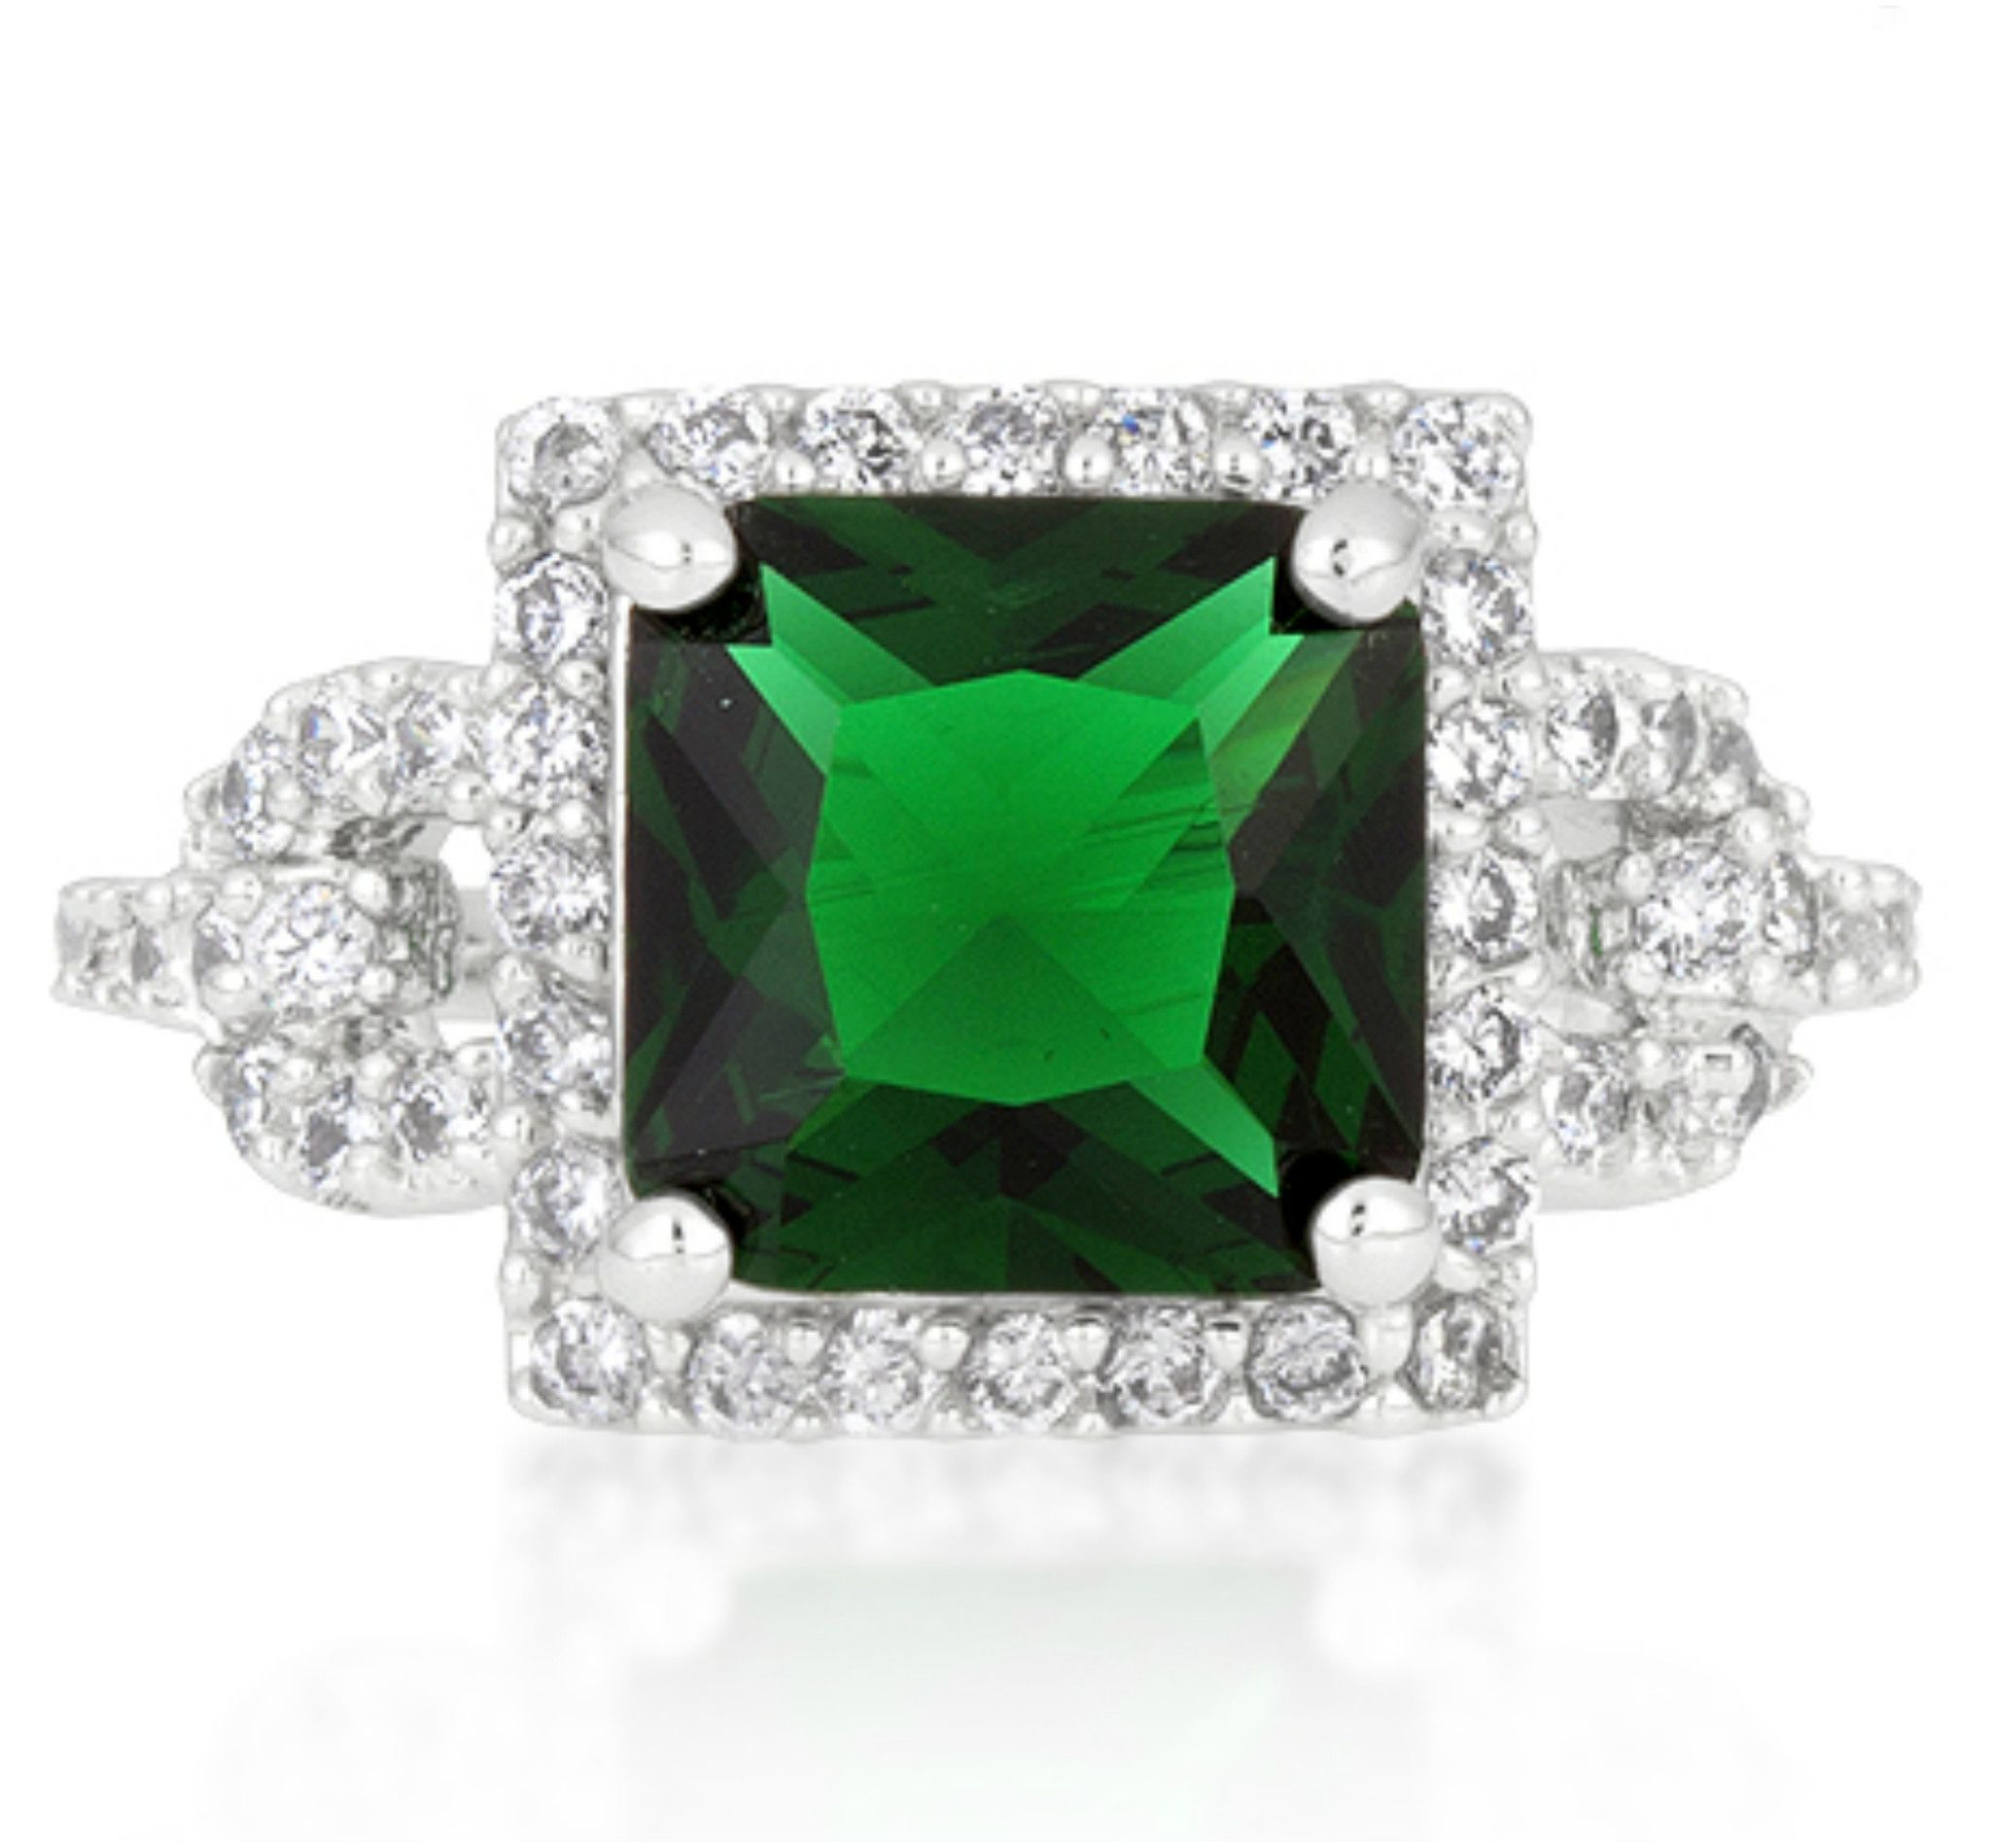 ring radiant cut band turned engagement diamond wedding emerald of with stone best